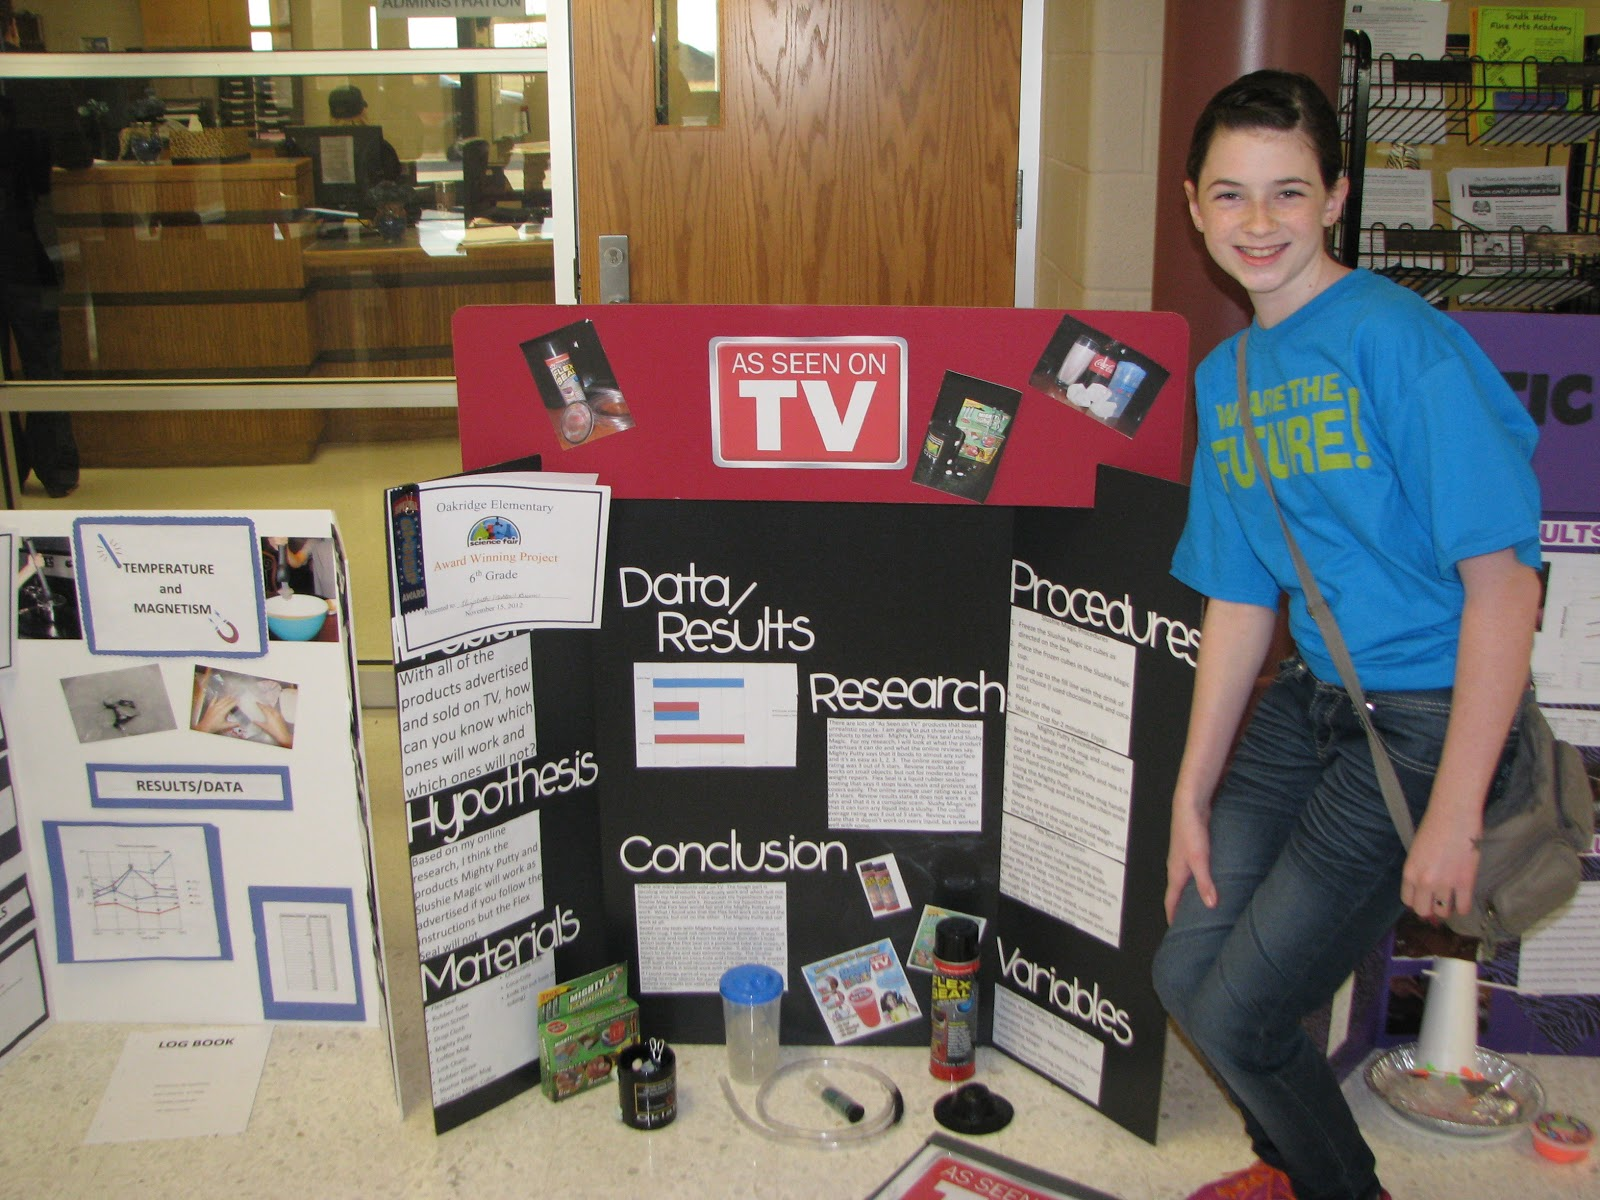 Science Fair Projects for Kids - Easy Ideas, Free